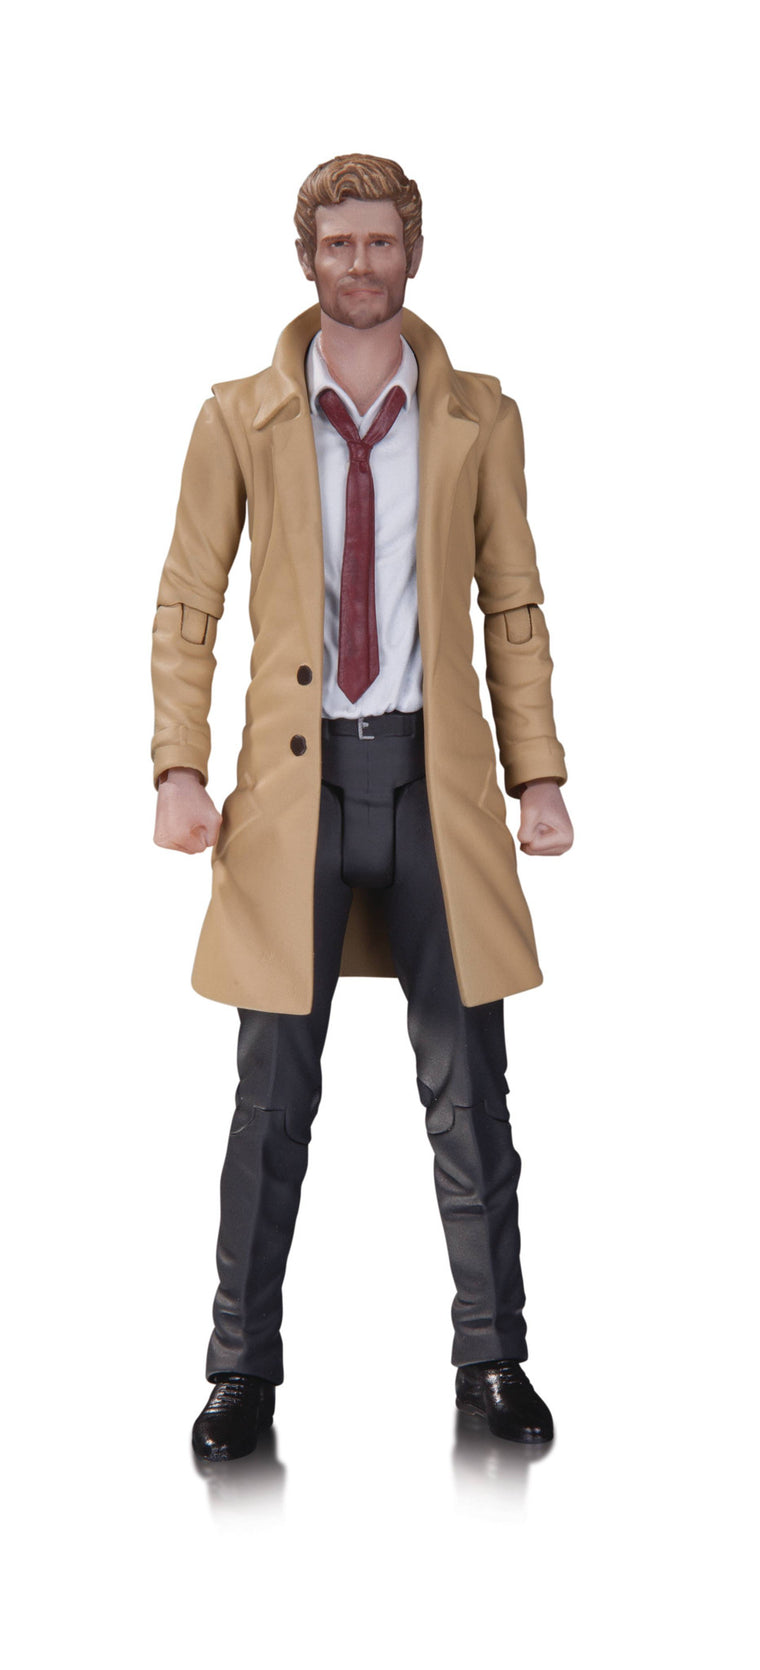 Arrow TV Series Constantine Figure by DC Collectibles